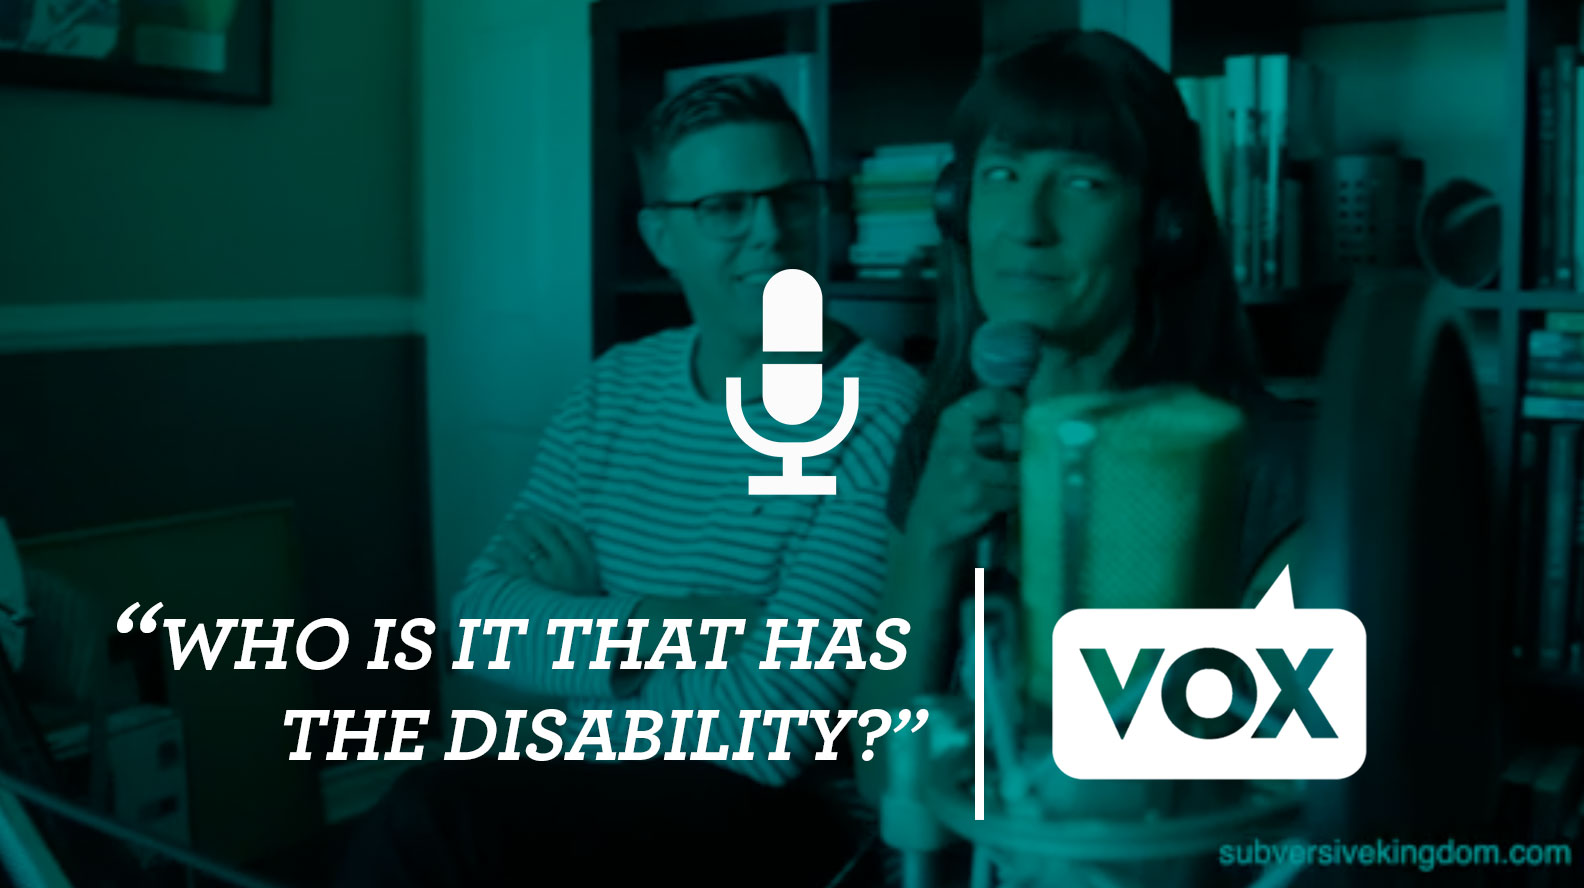 Who is it that has the disability? VOX